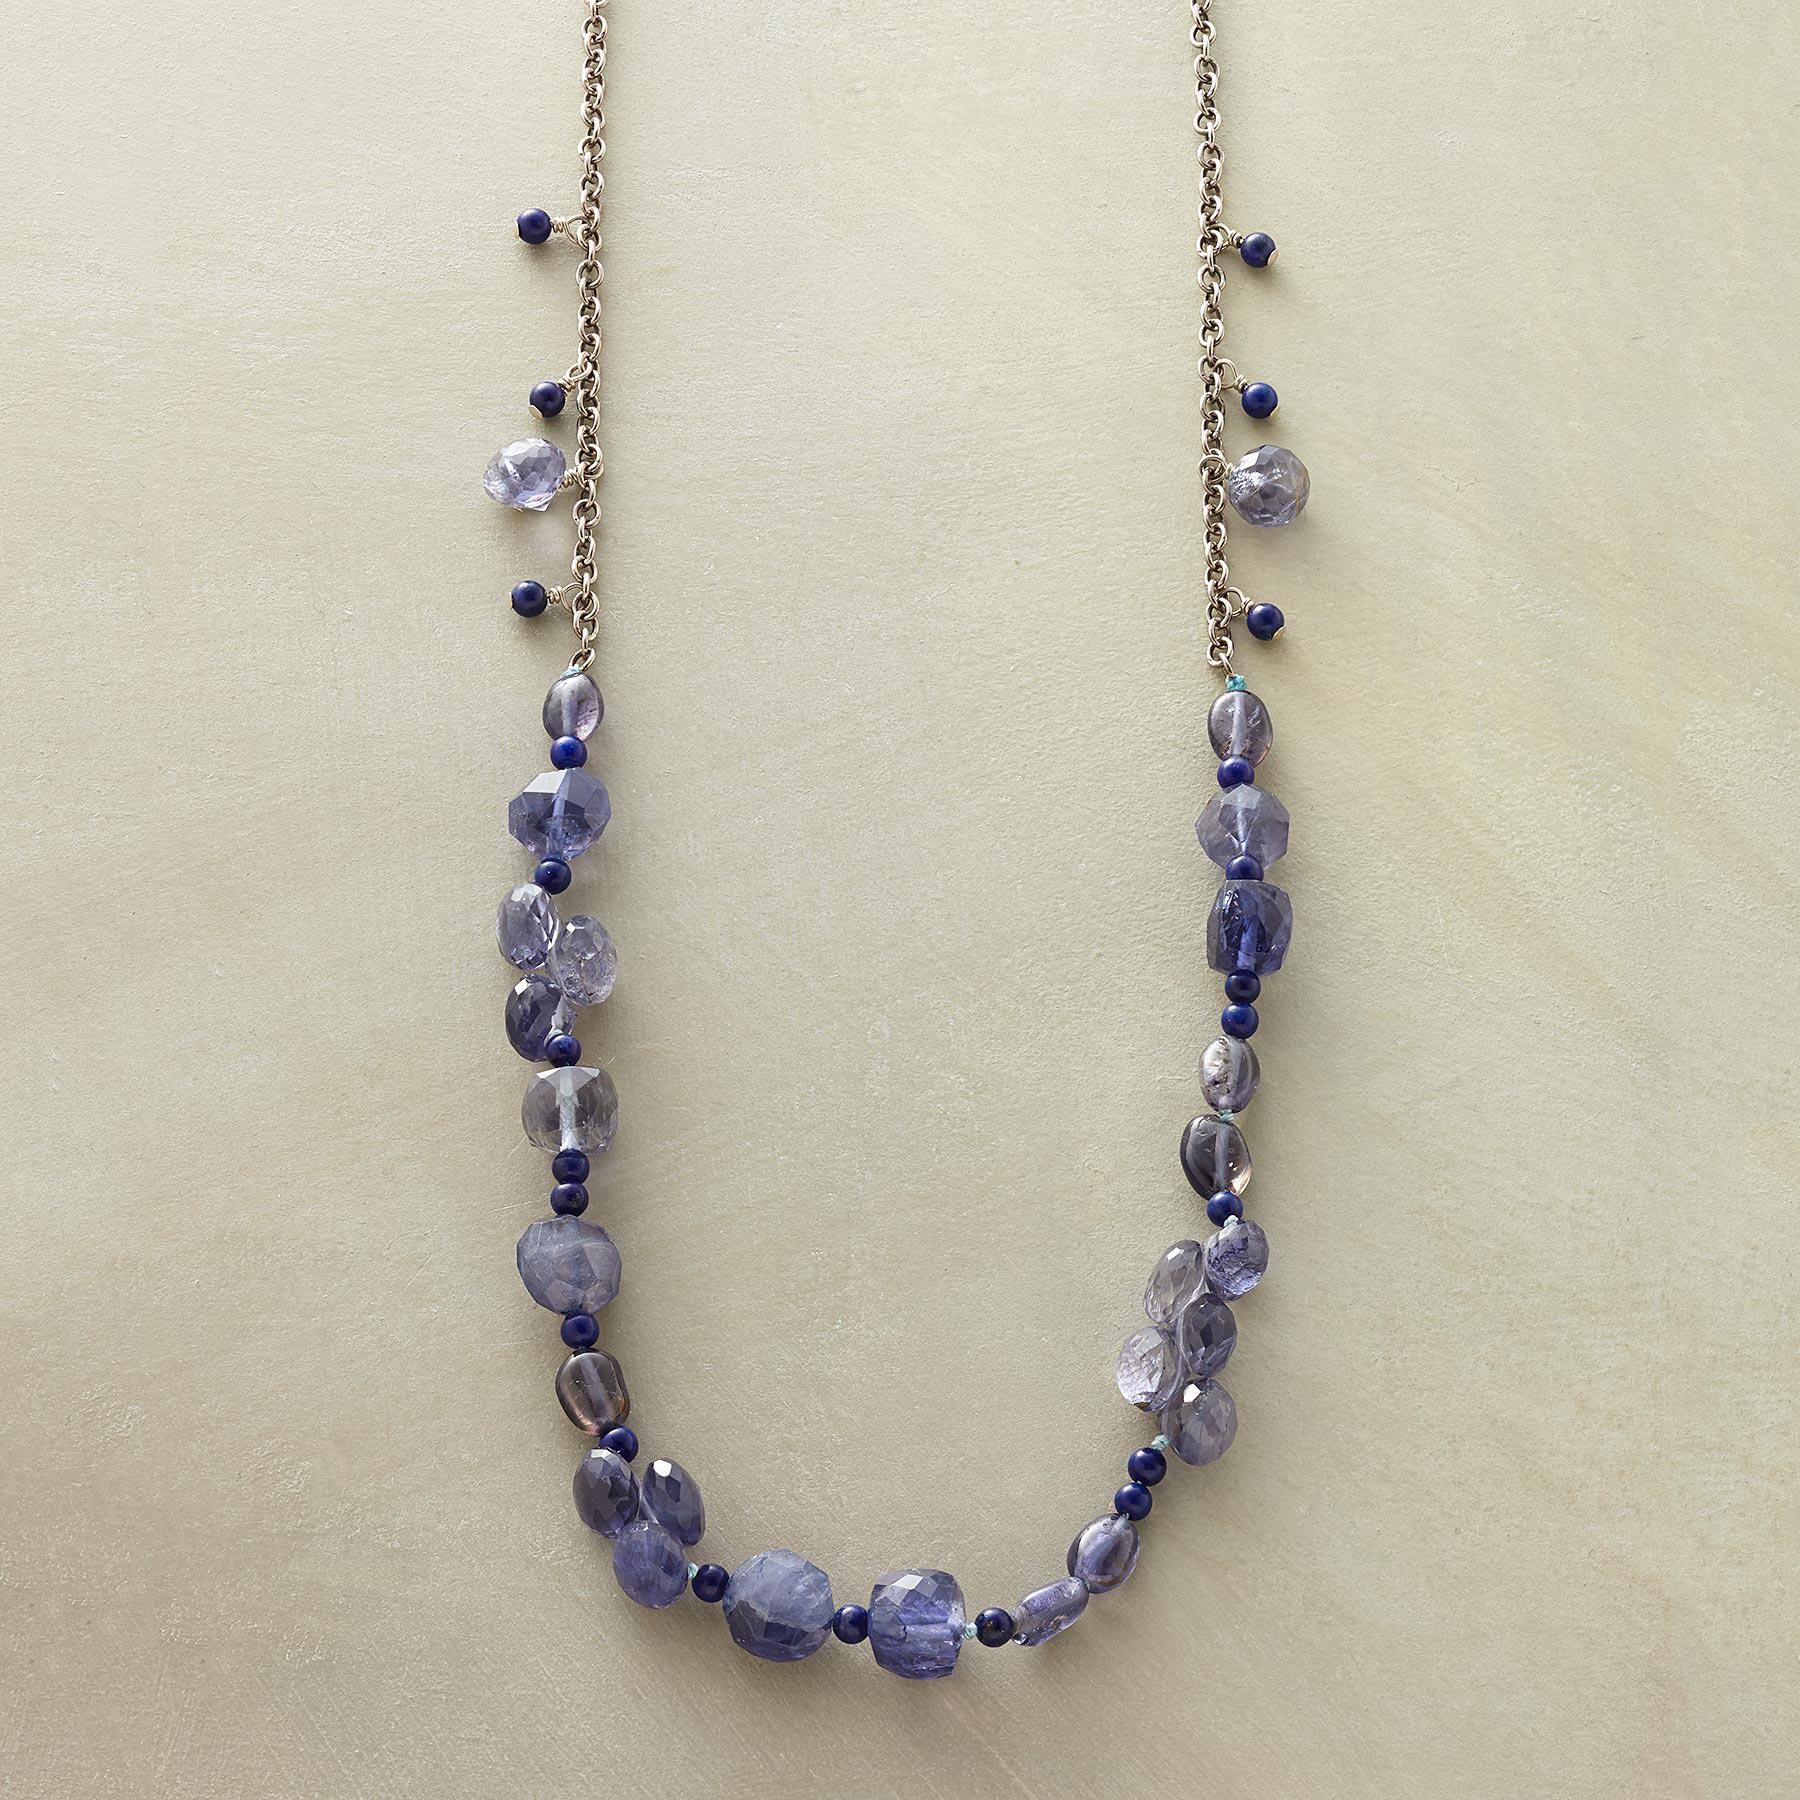 TWO BLUES NECKLACE: View 1